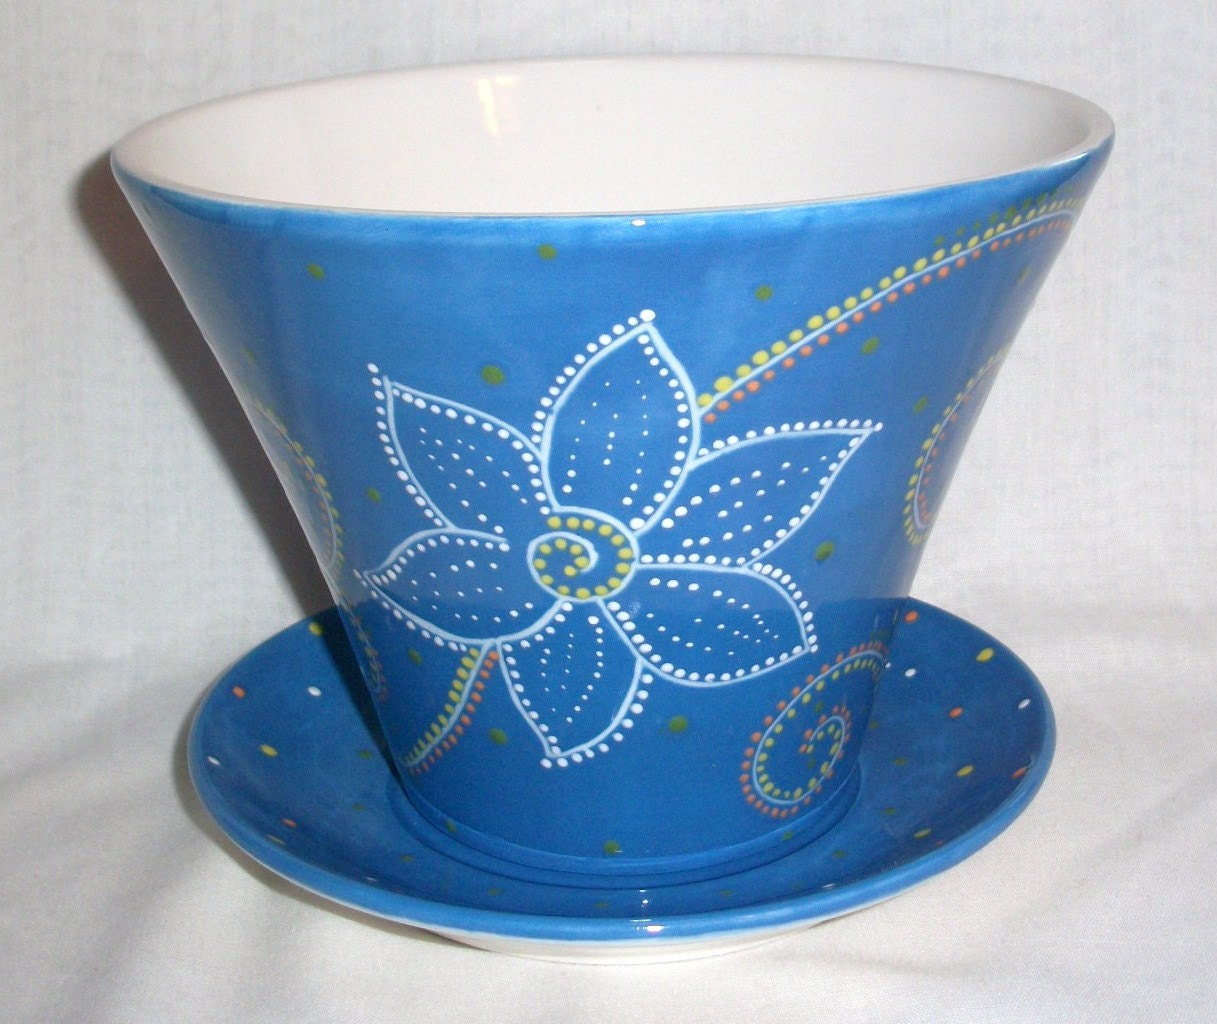 ceramic flower pot hand painted blue flowers swirls